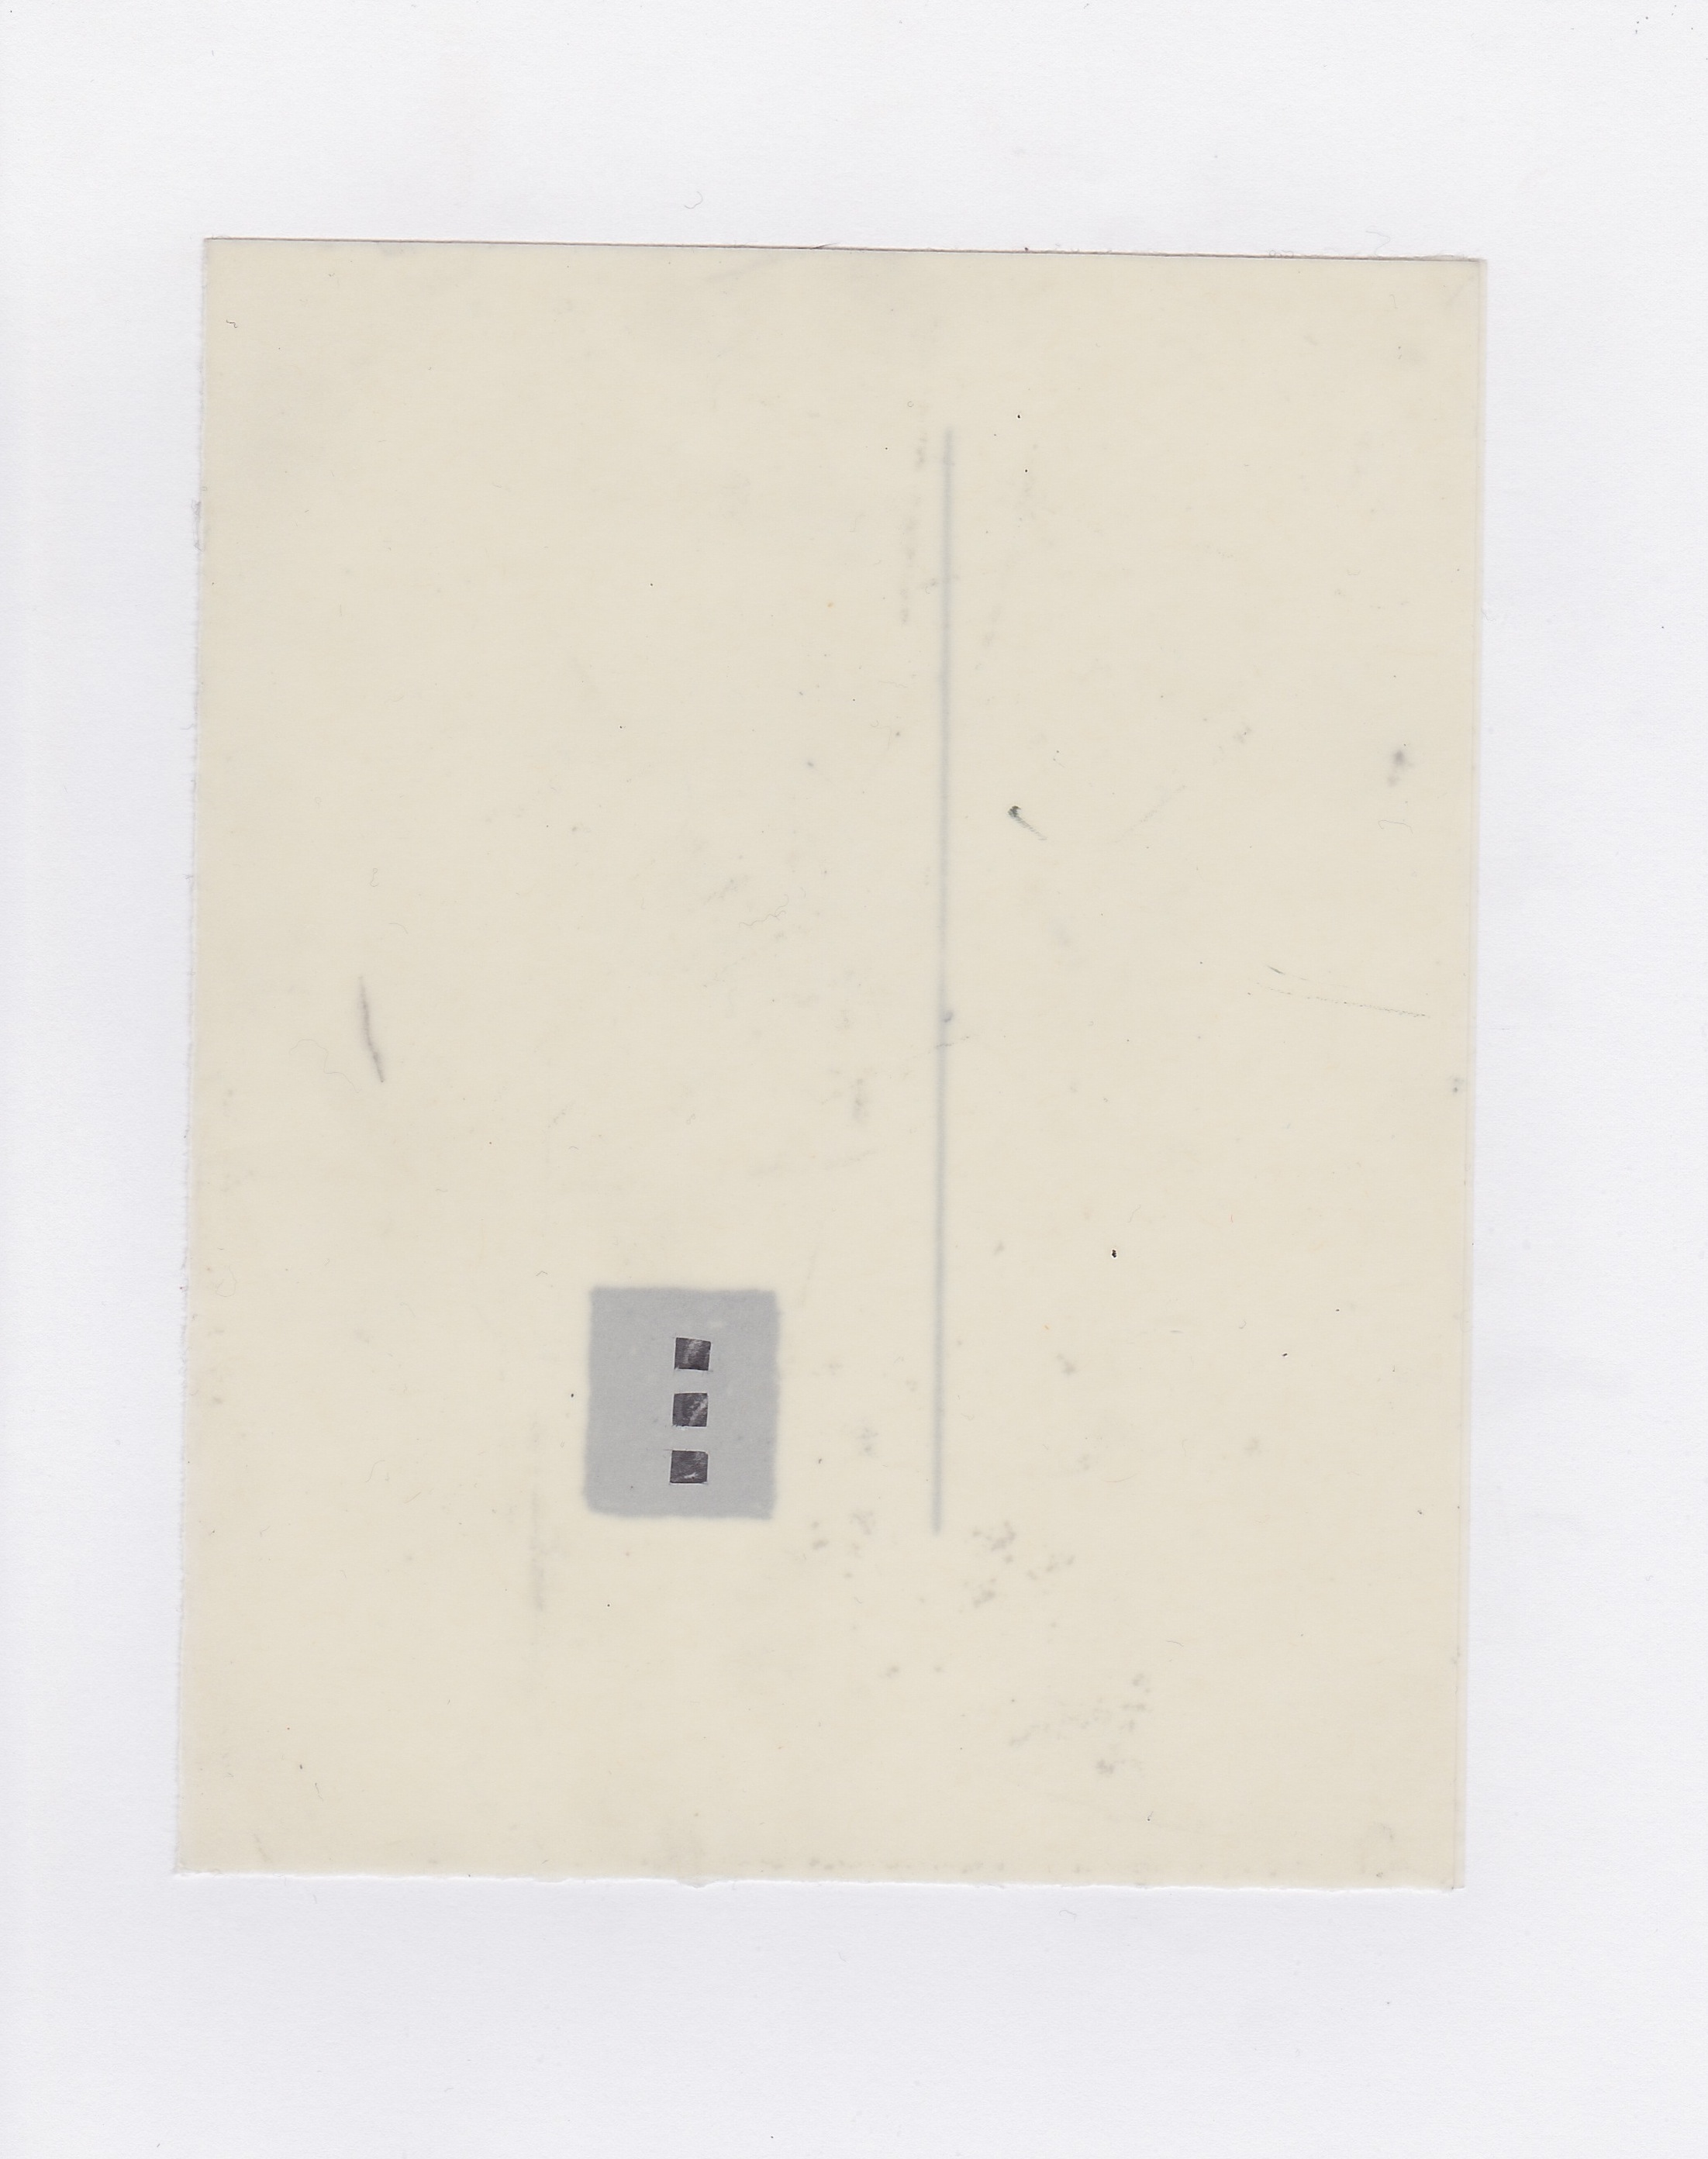 Untitled (the city, observations 15A)  Pencil on oiled fabriano paper. (15A 2 x layered)  140mm x 180mm  December 2013